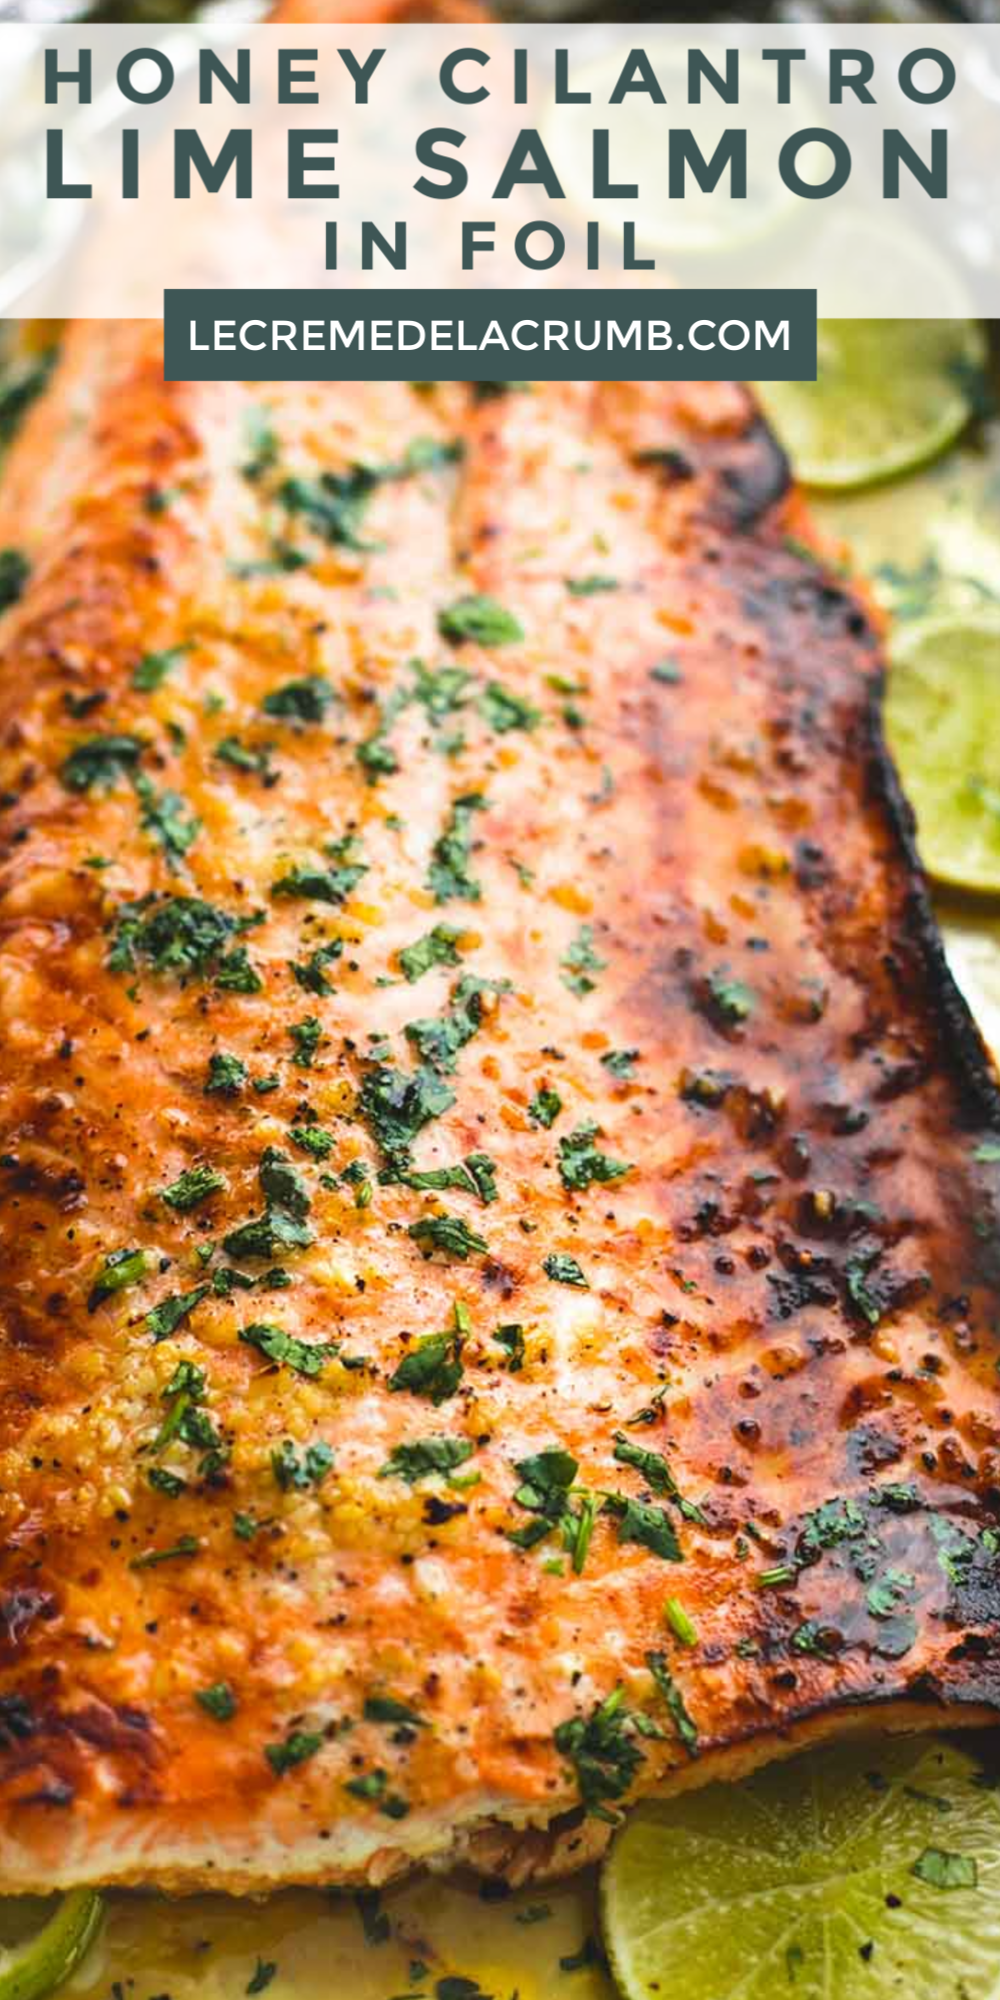 Photo of Honey Cilantro Lime Salmon In Foil